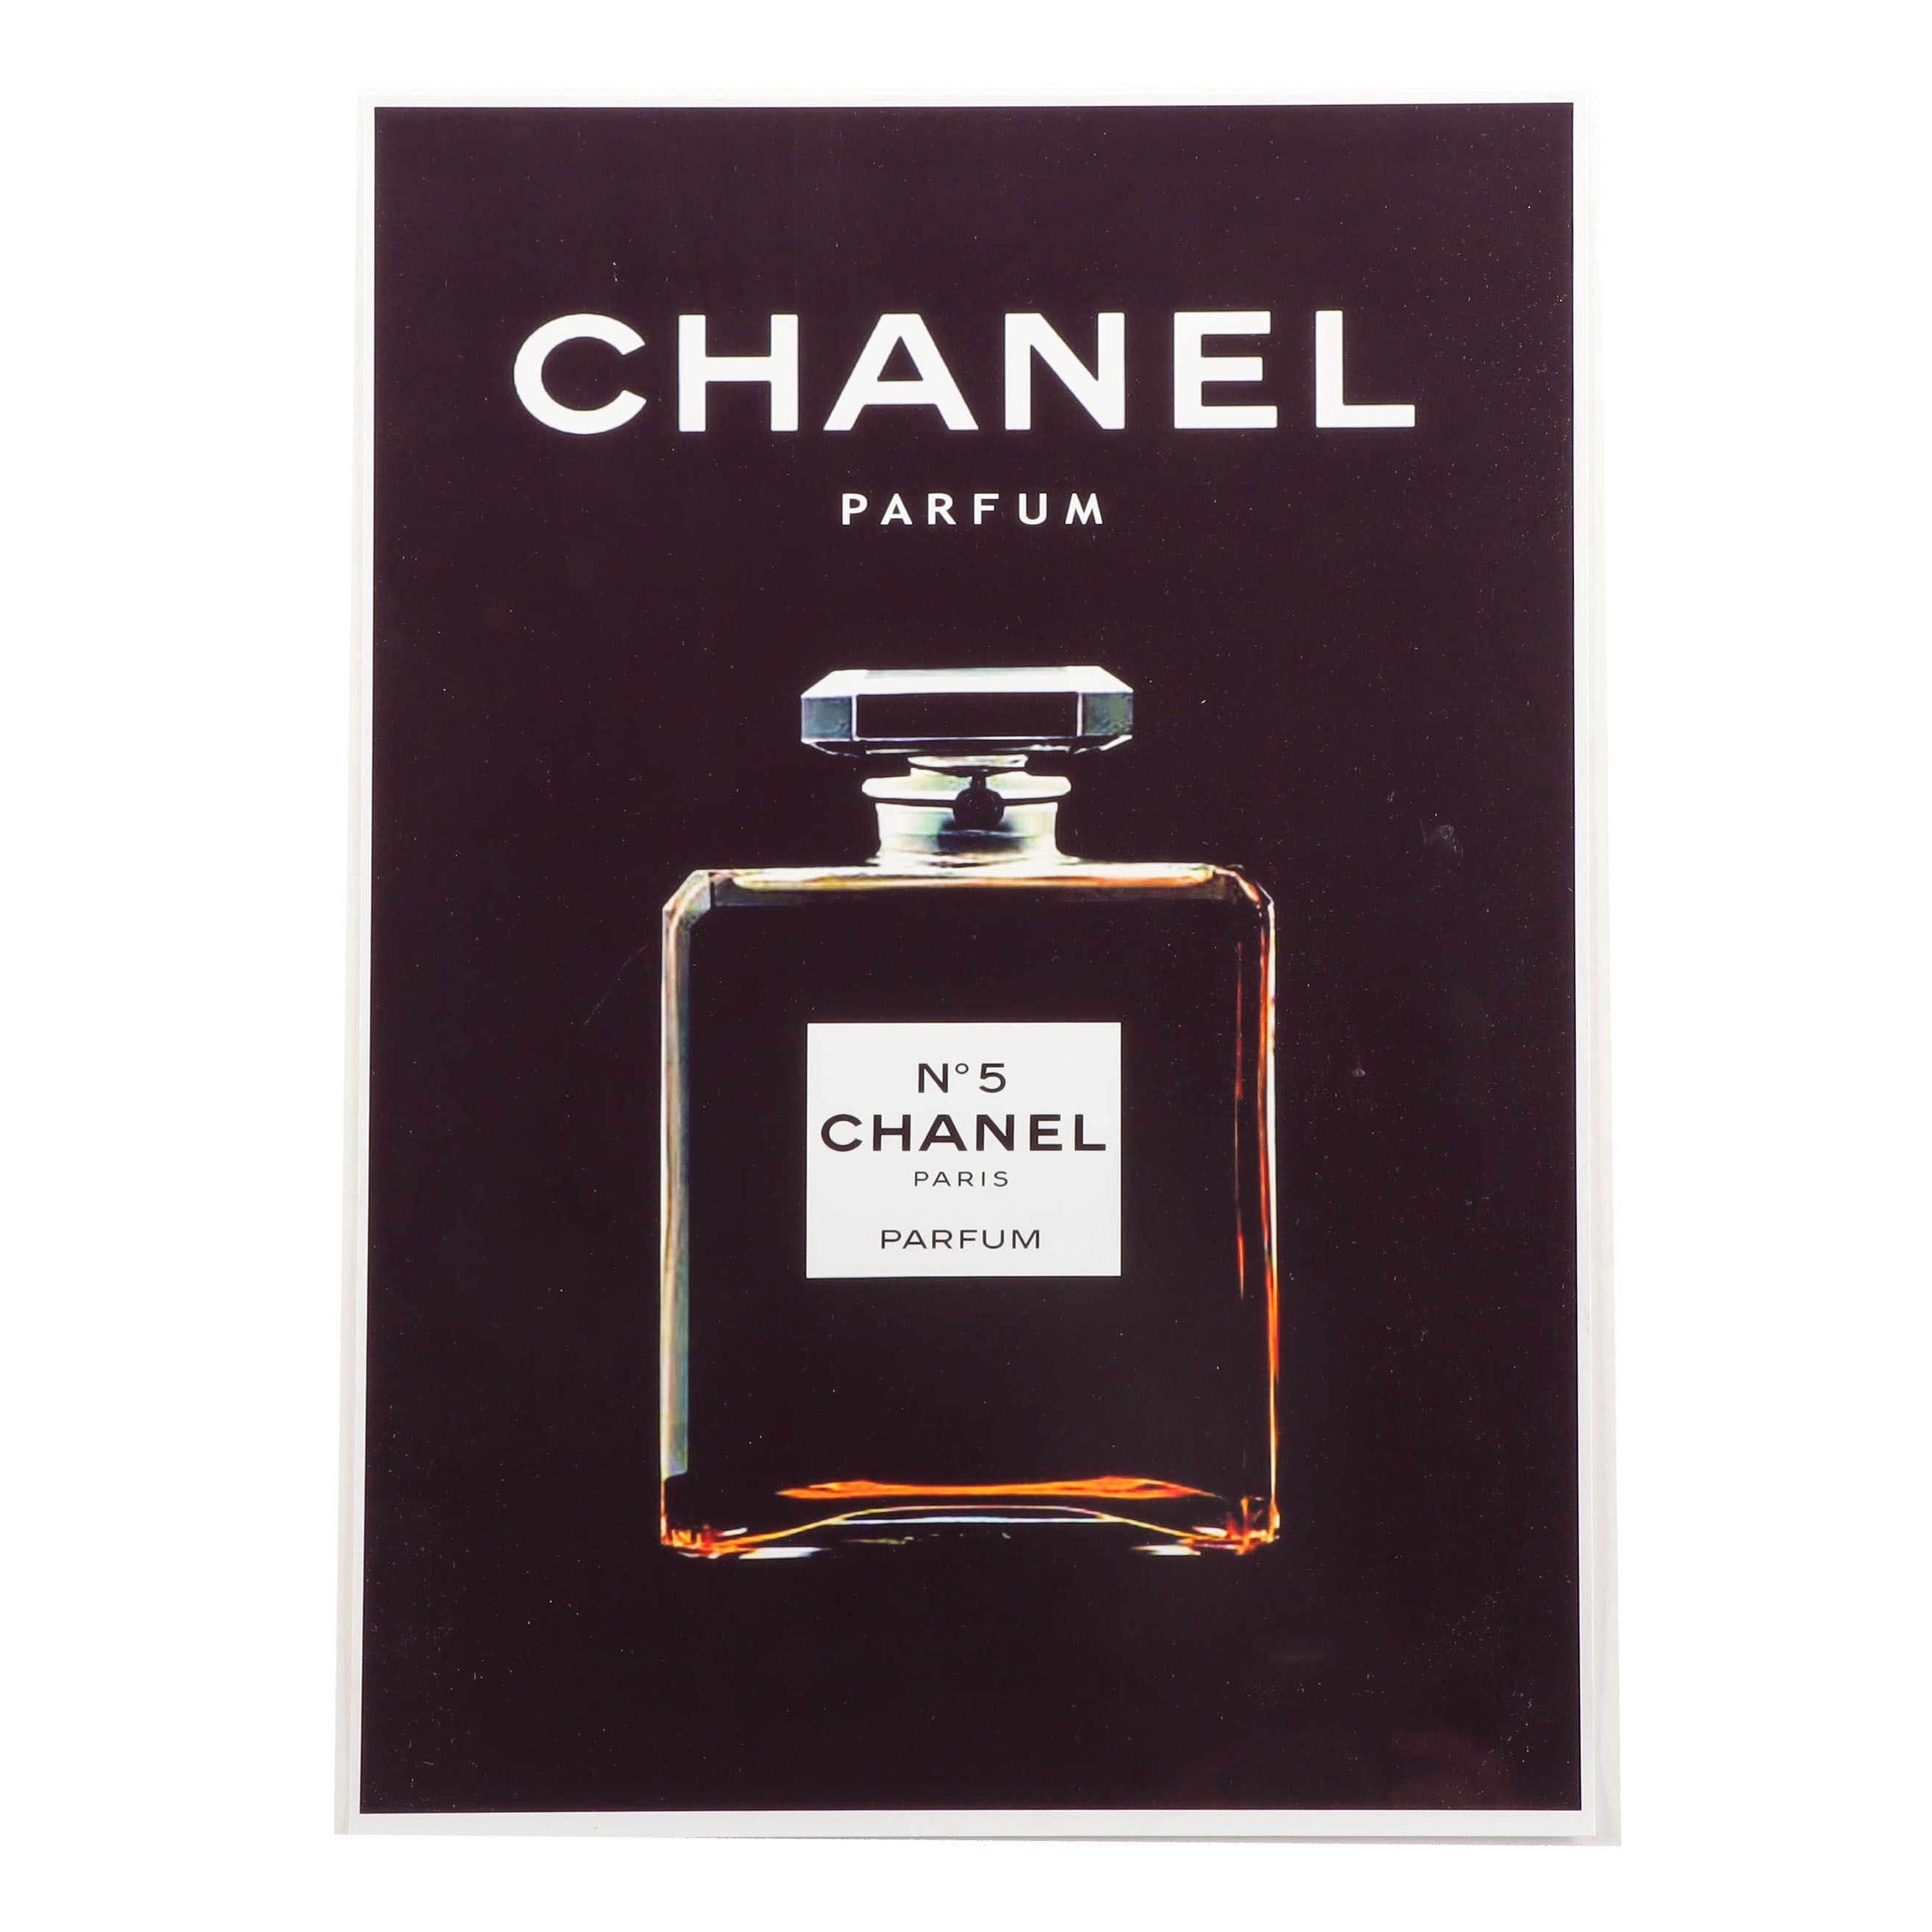 Giclee after Vintage Advertisement for Chanel No. 5 Parfum